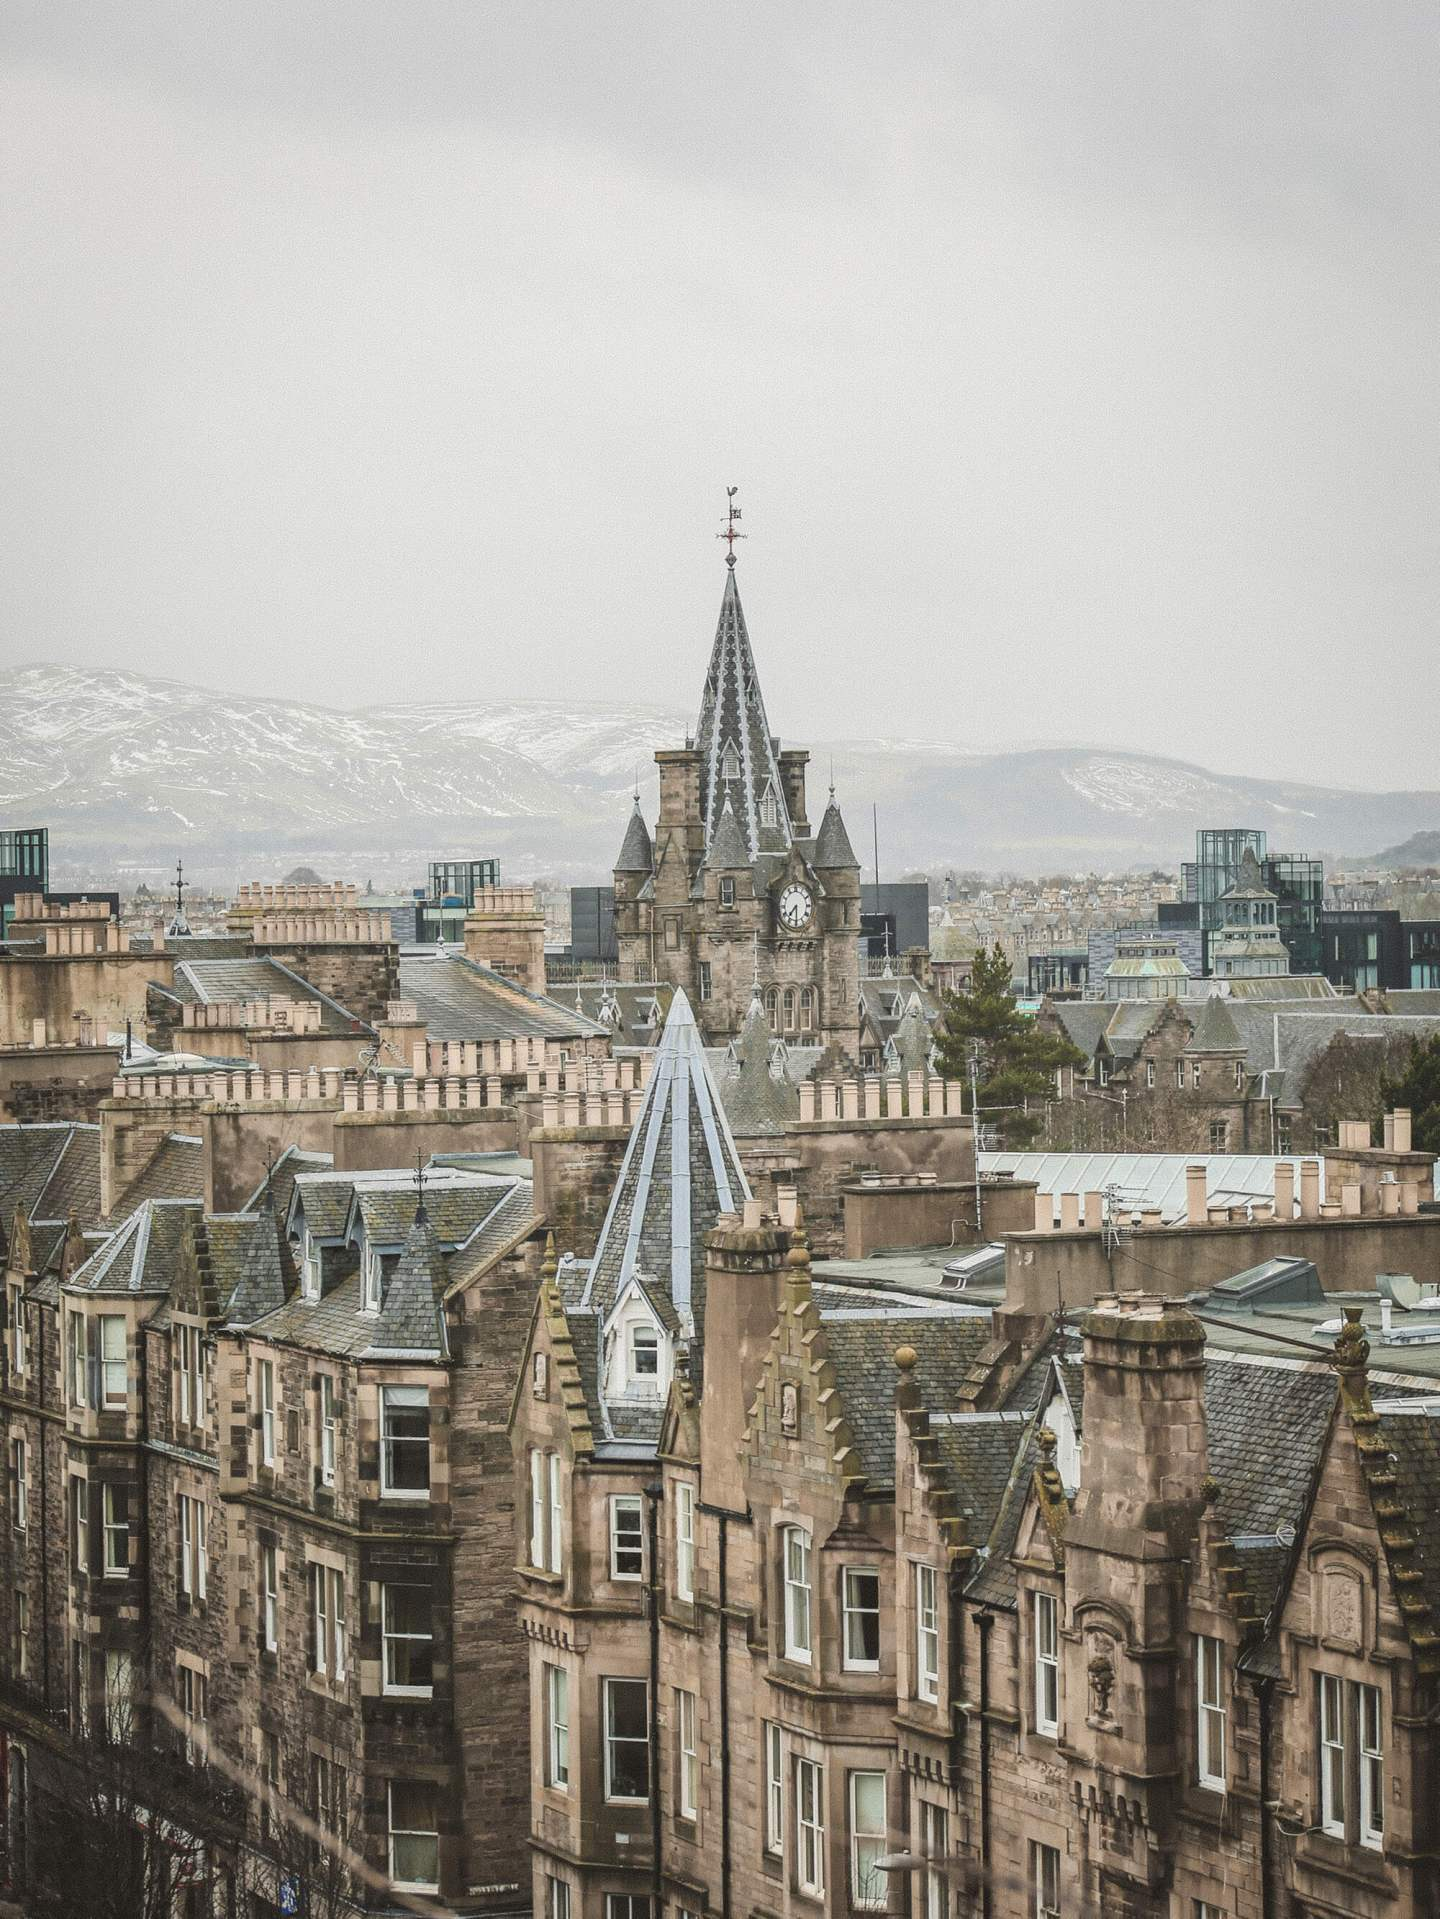 Best-Viewpoints-In-Edinburgh